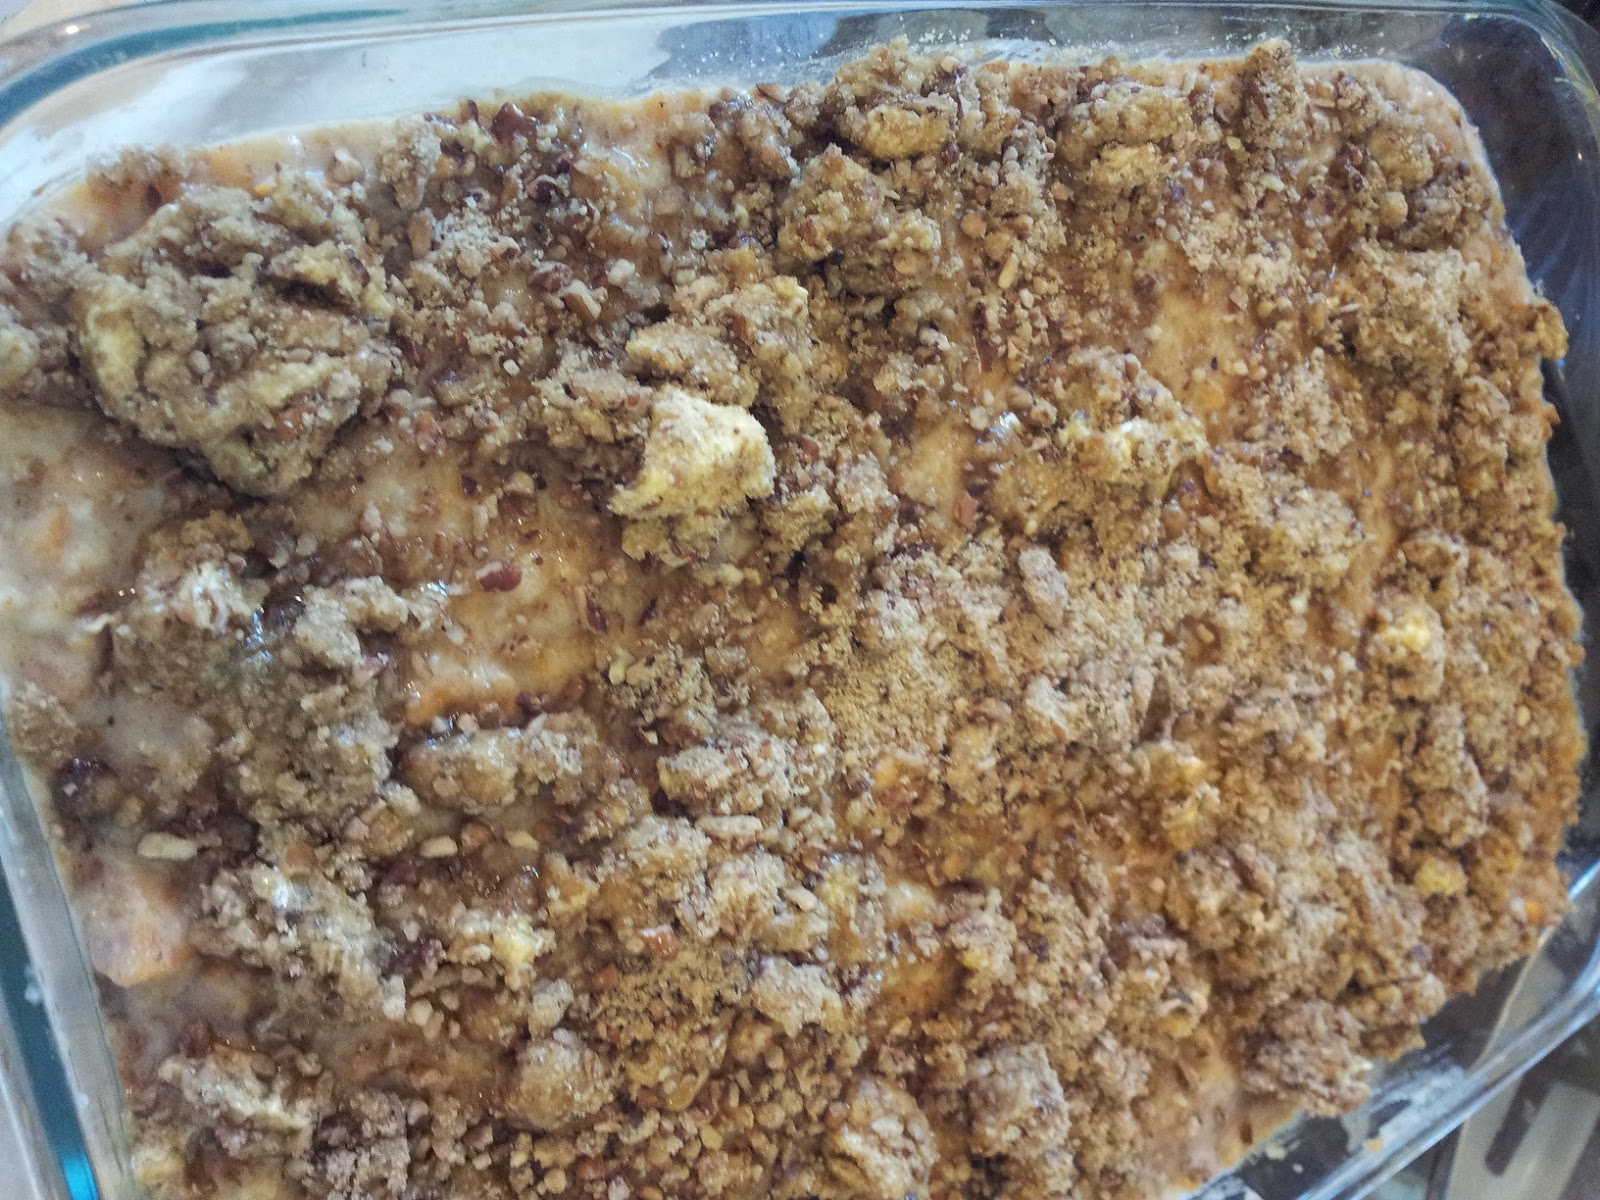 ... sweet potato casserole sweet potato casserole sweet potato casserole